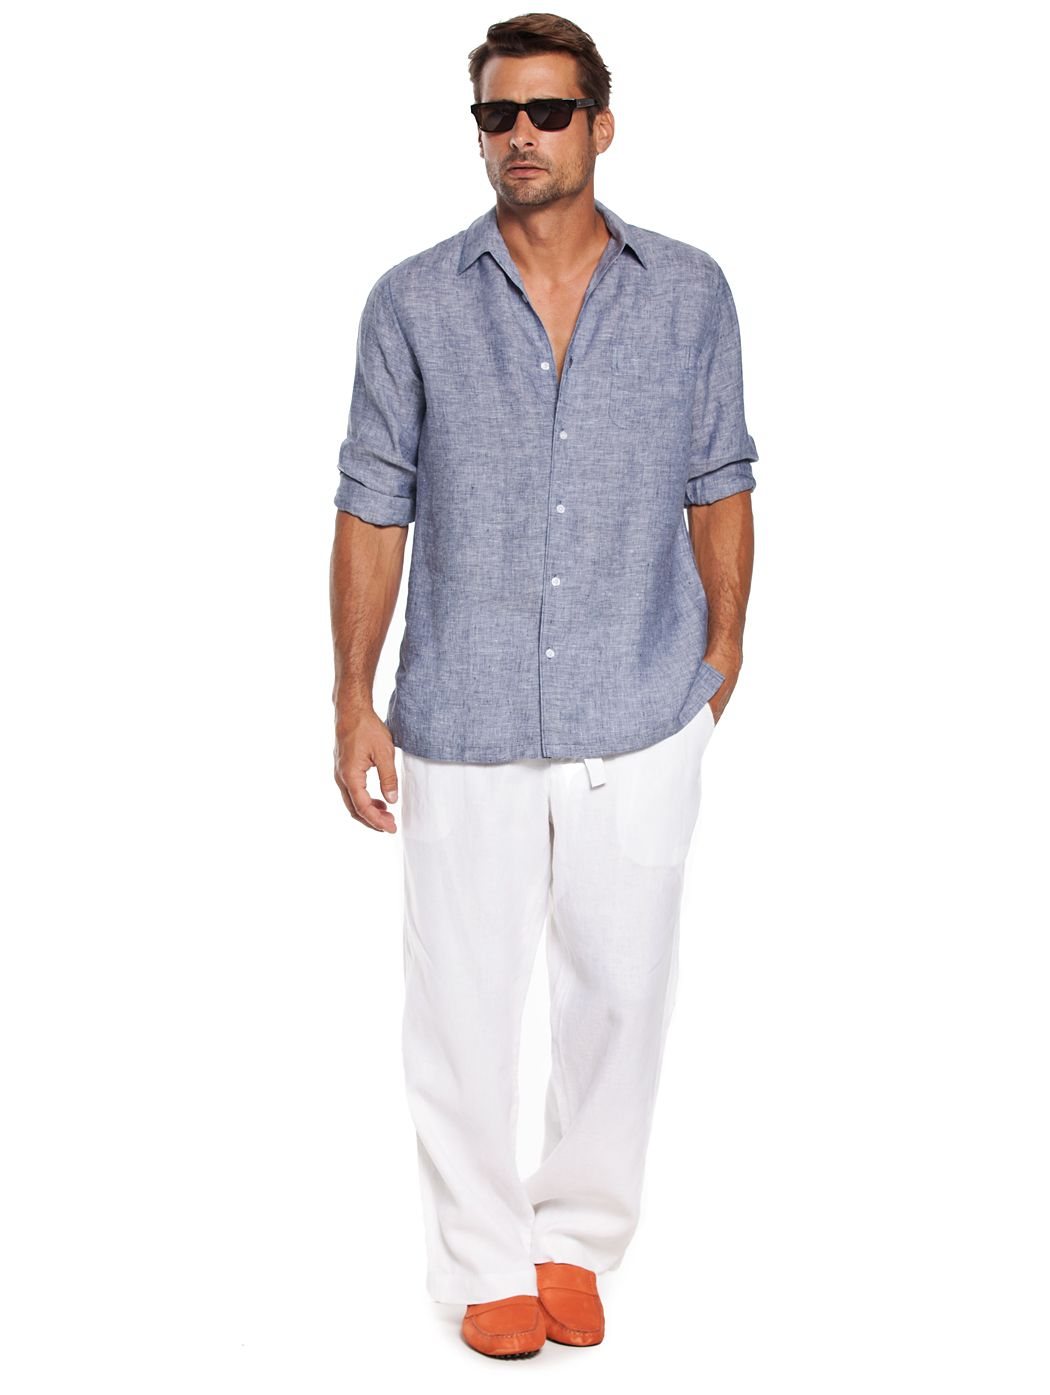 634d1046e2 Mens White Linen Beach Pants | jef | White pants men, Linen shirt ...